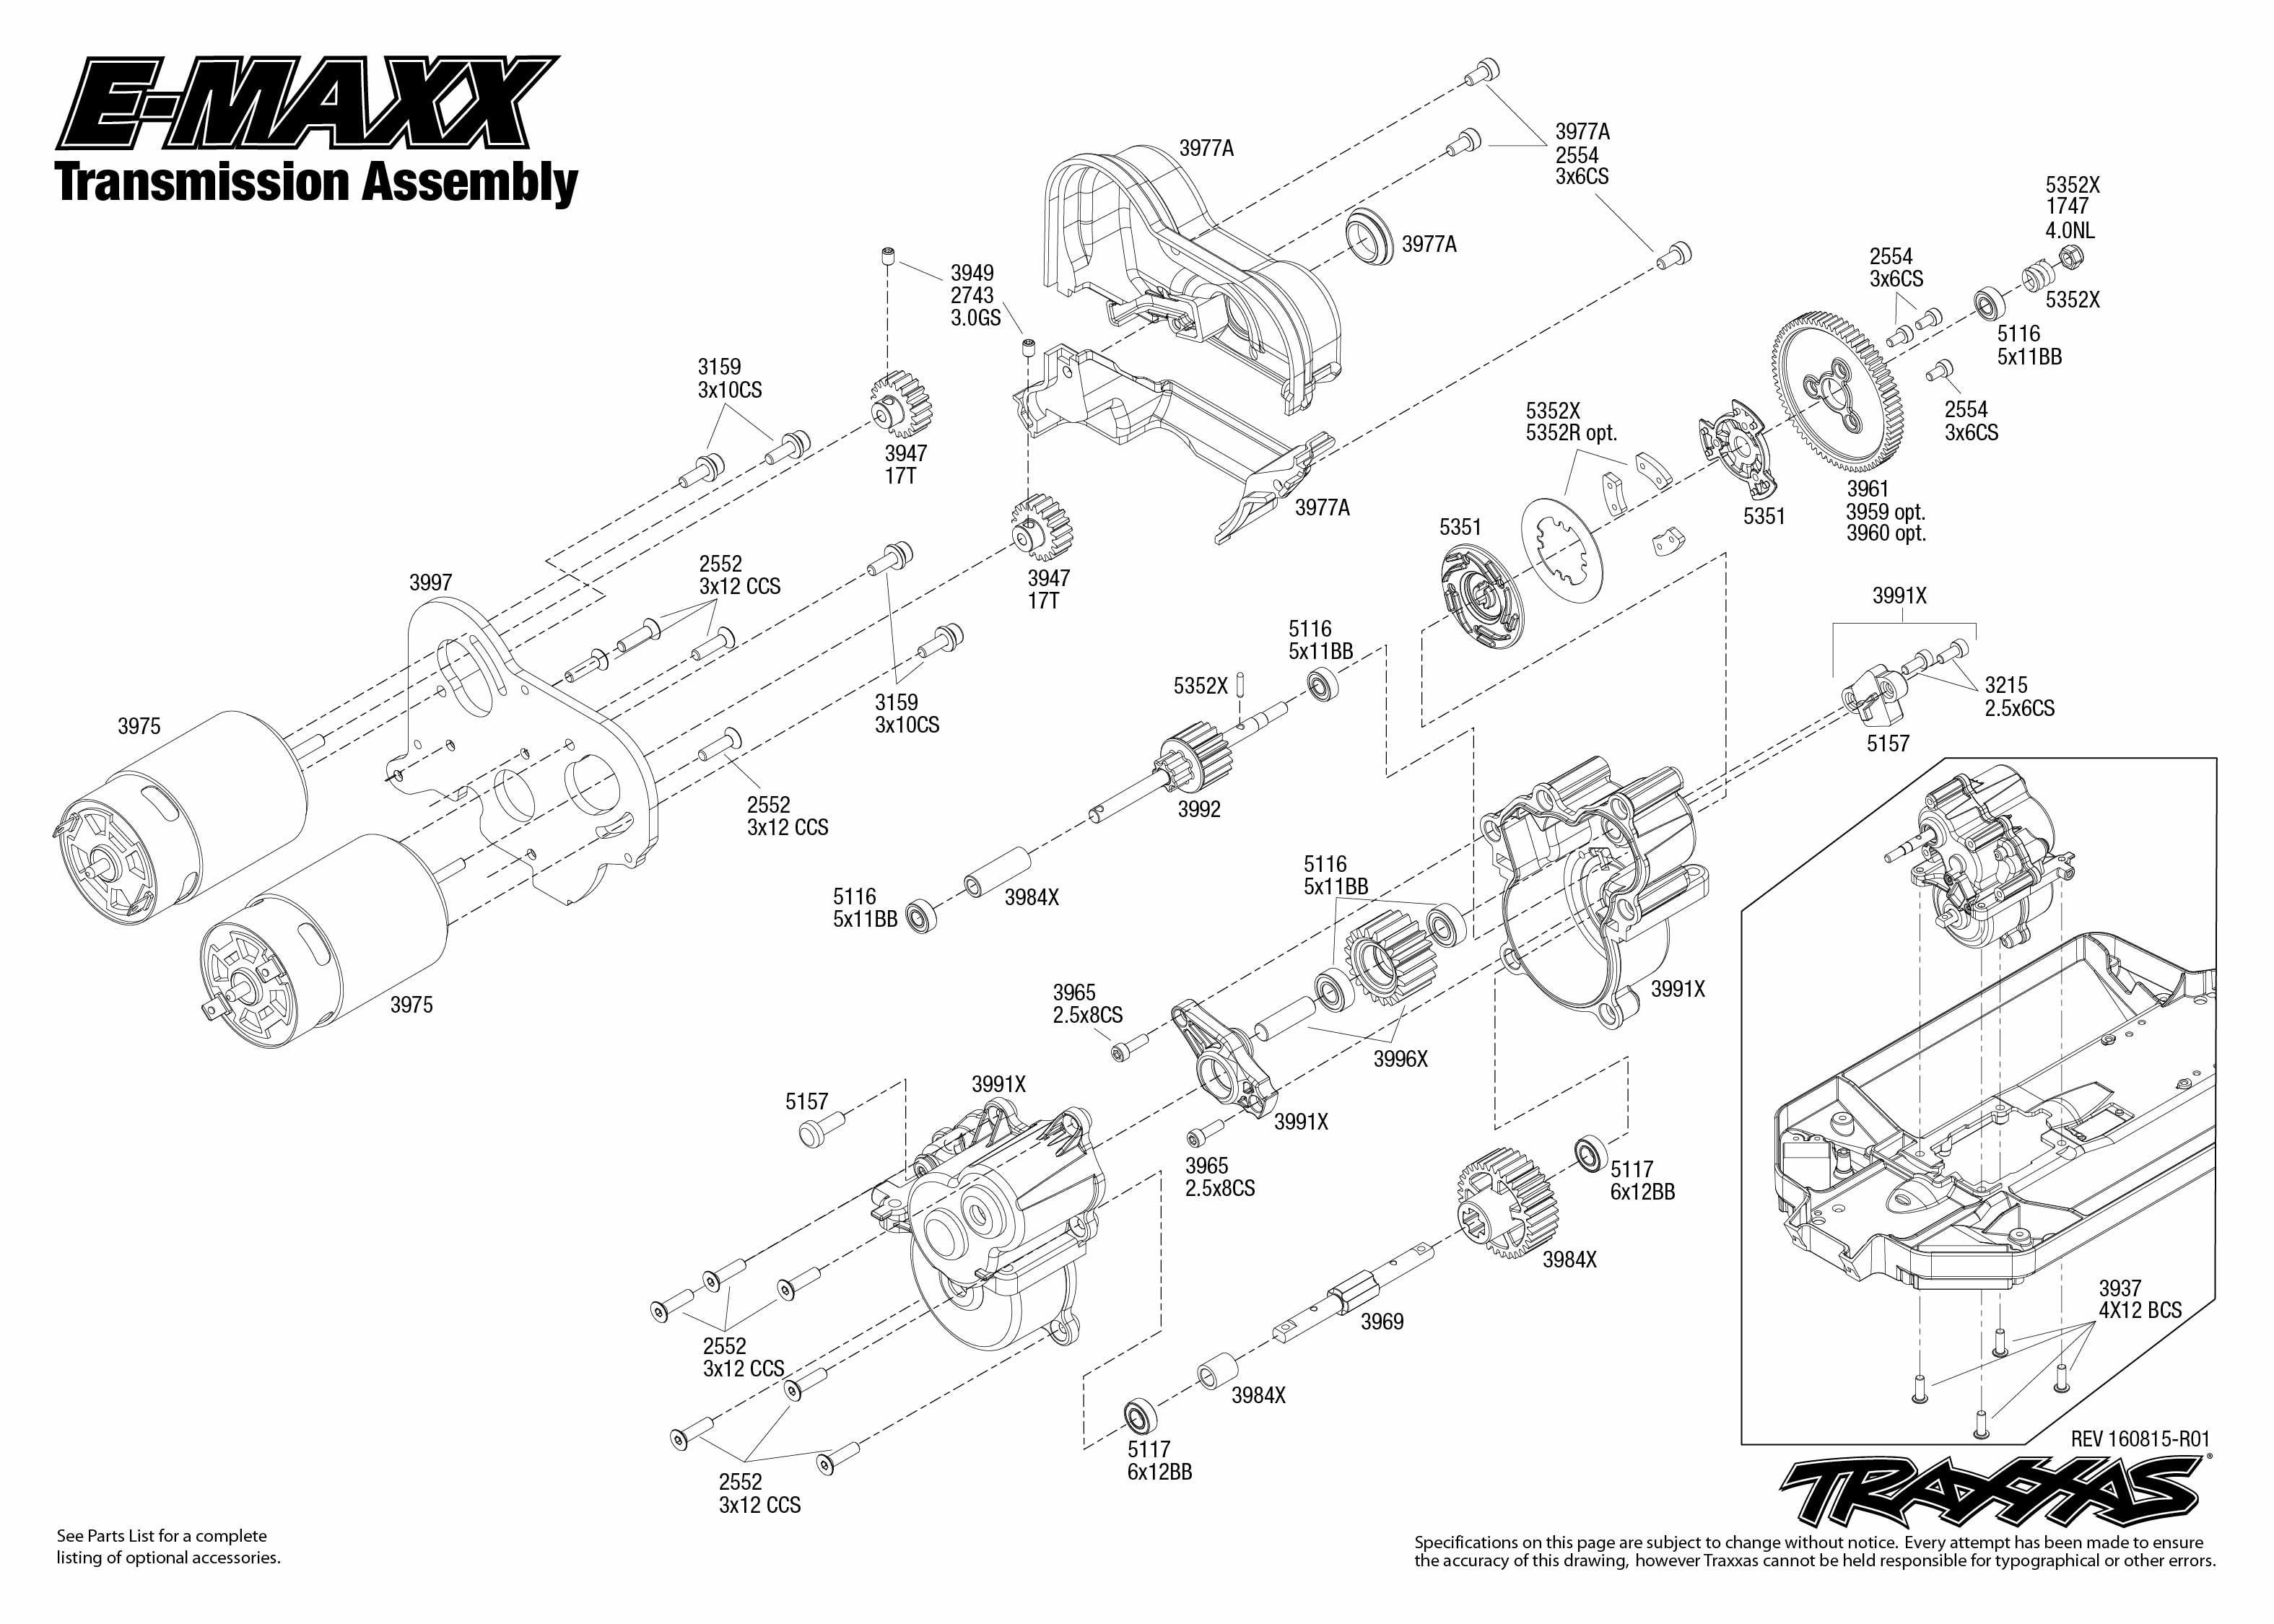 Traxxas 3906 Parts Diagram Air Filter Wiring Diagrams E Maxx 39036 1 Transmission Assembly Exploded View